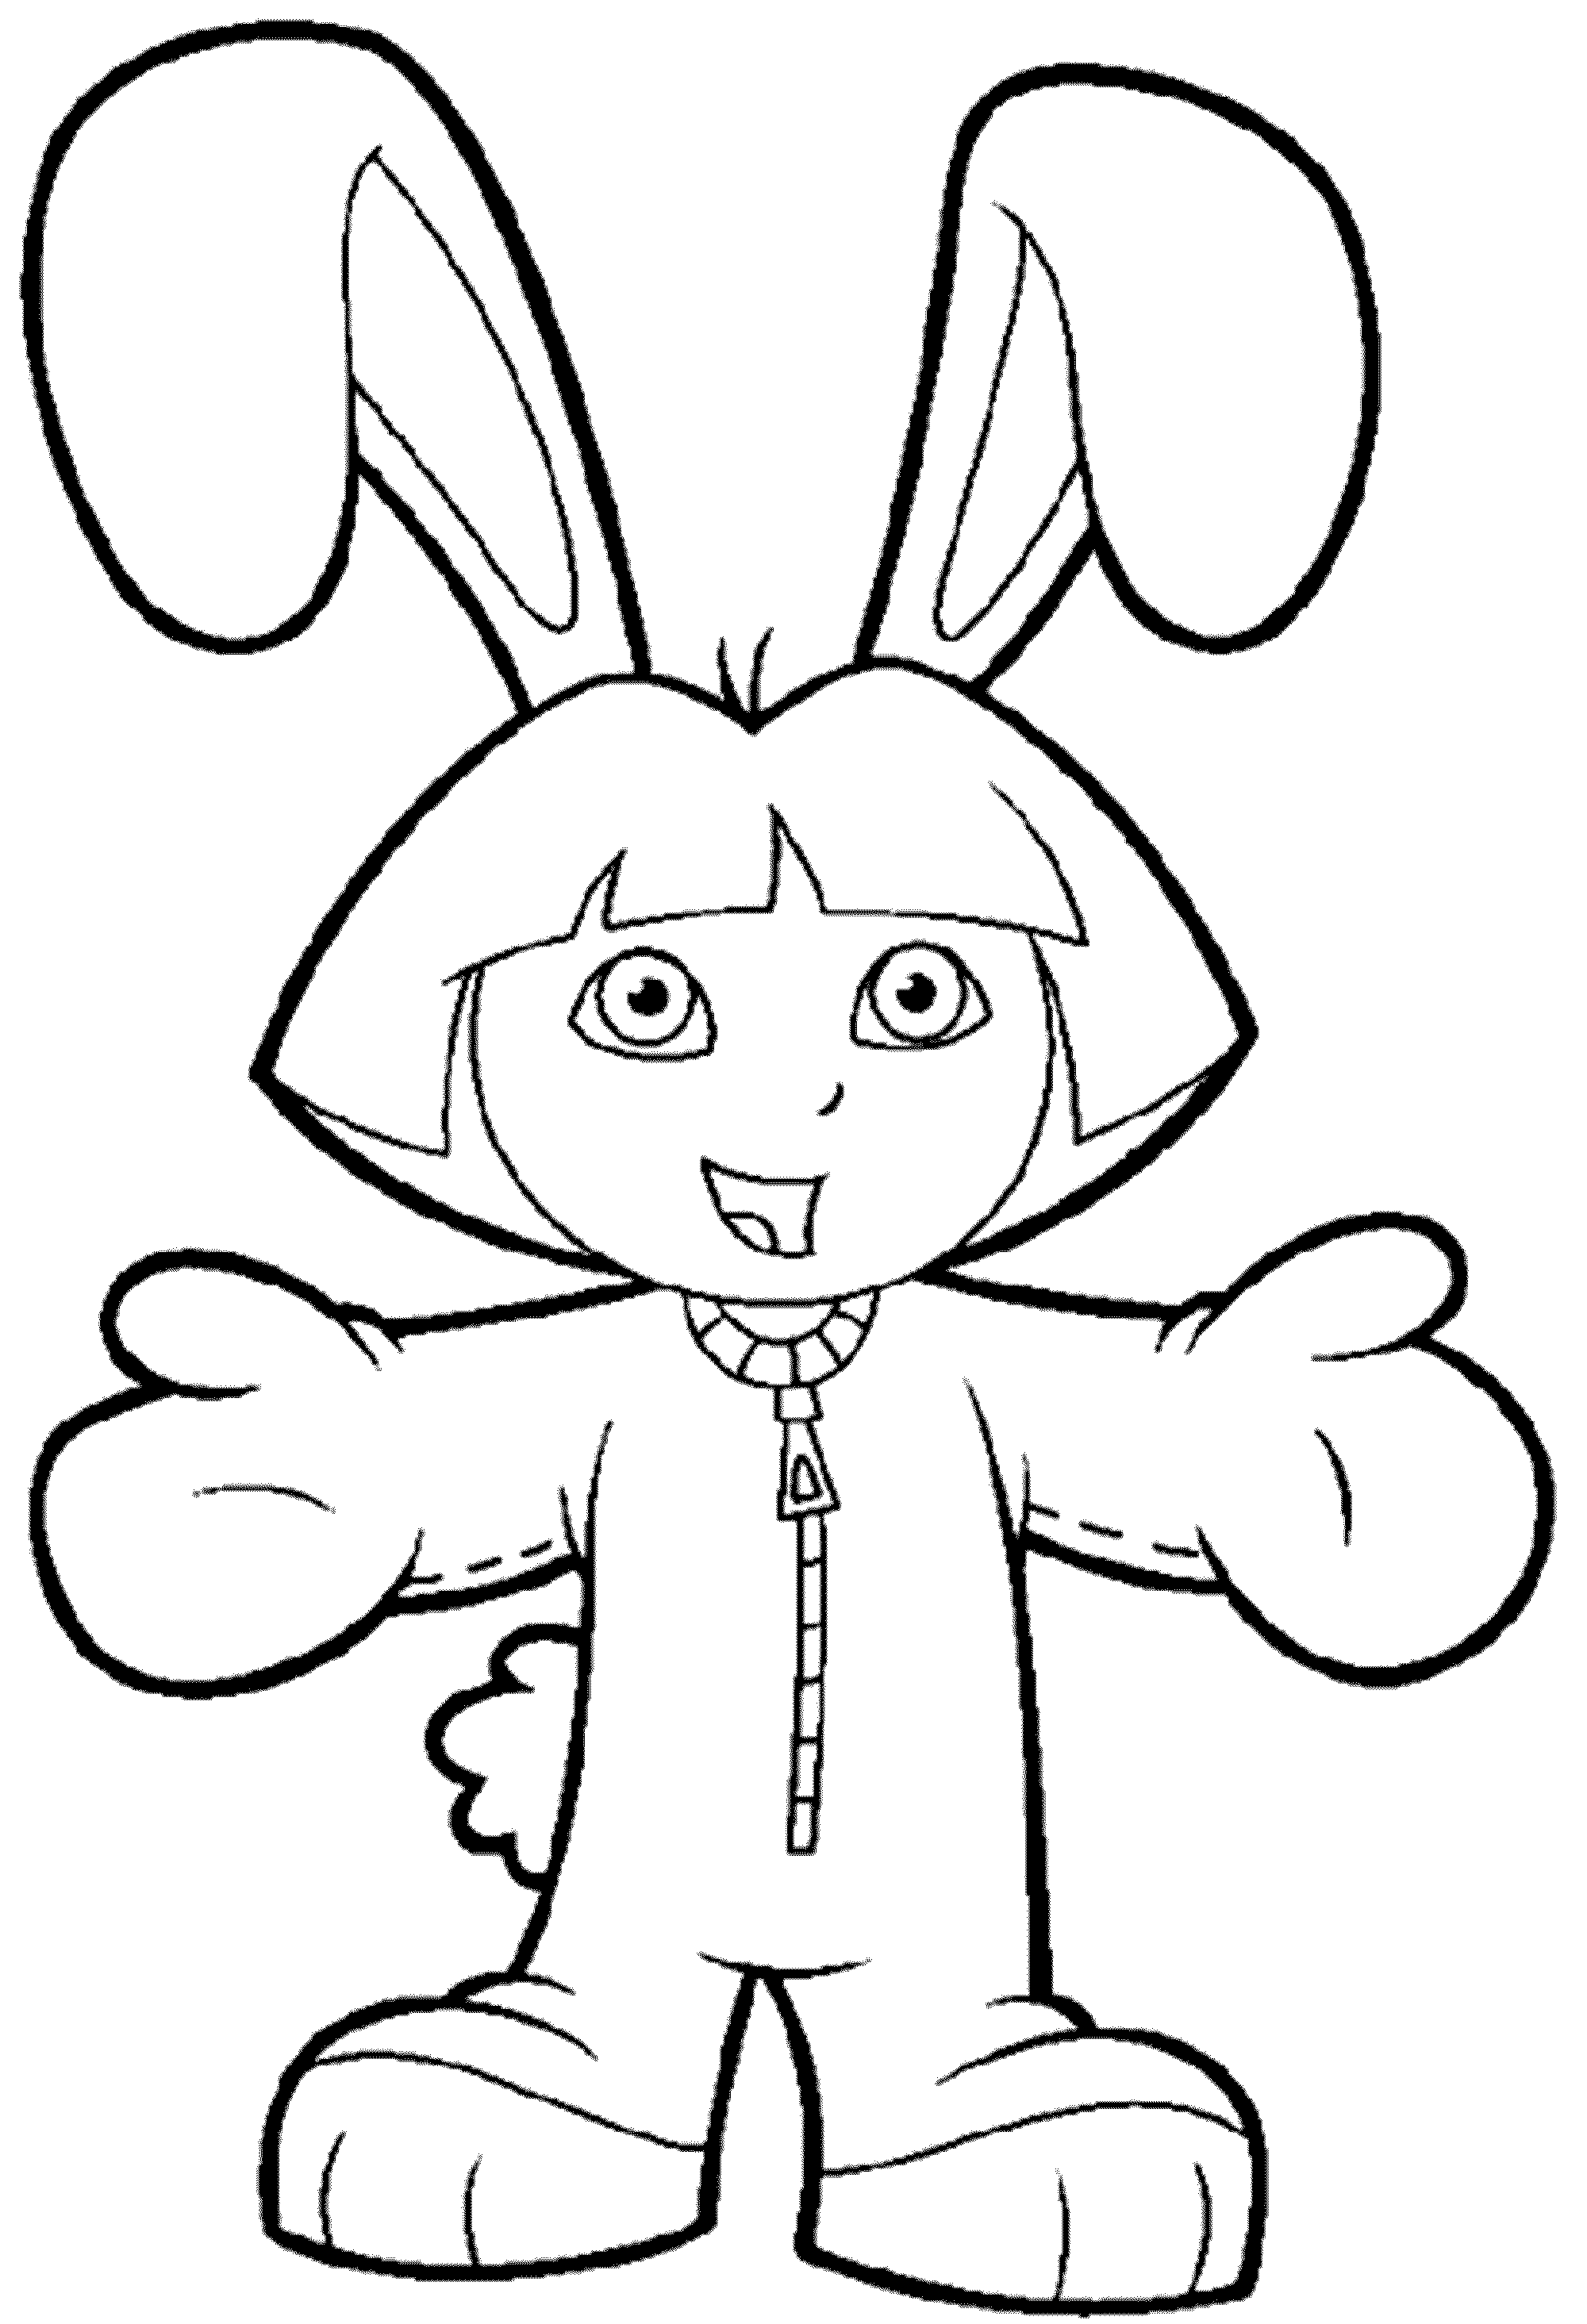 print download dora coloring pages to learn new things - Dora The Explorer Pictures To Color And Print